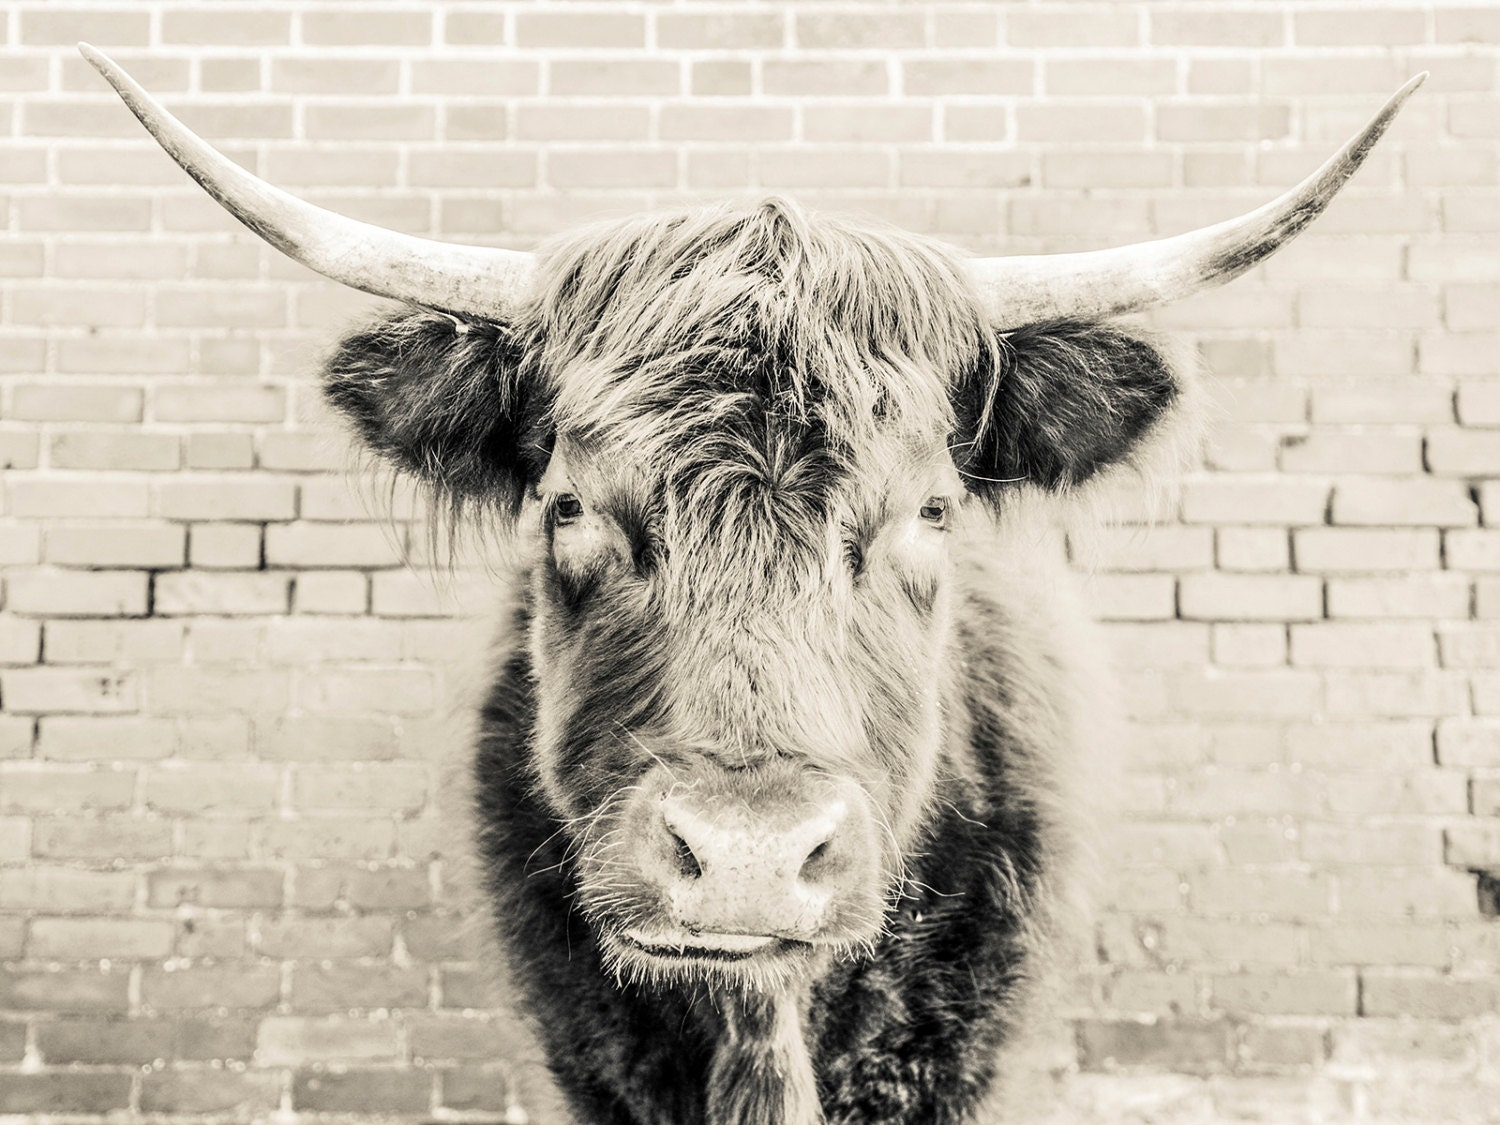 the bull 2 bull print black and white cow print photographic